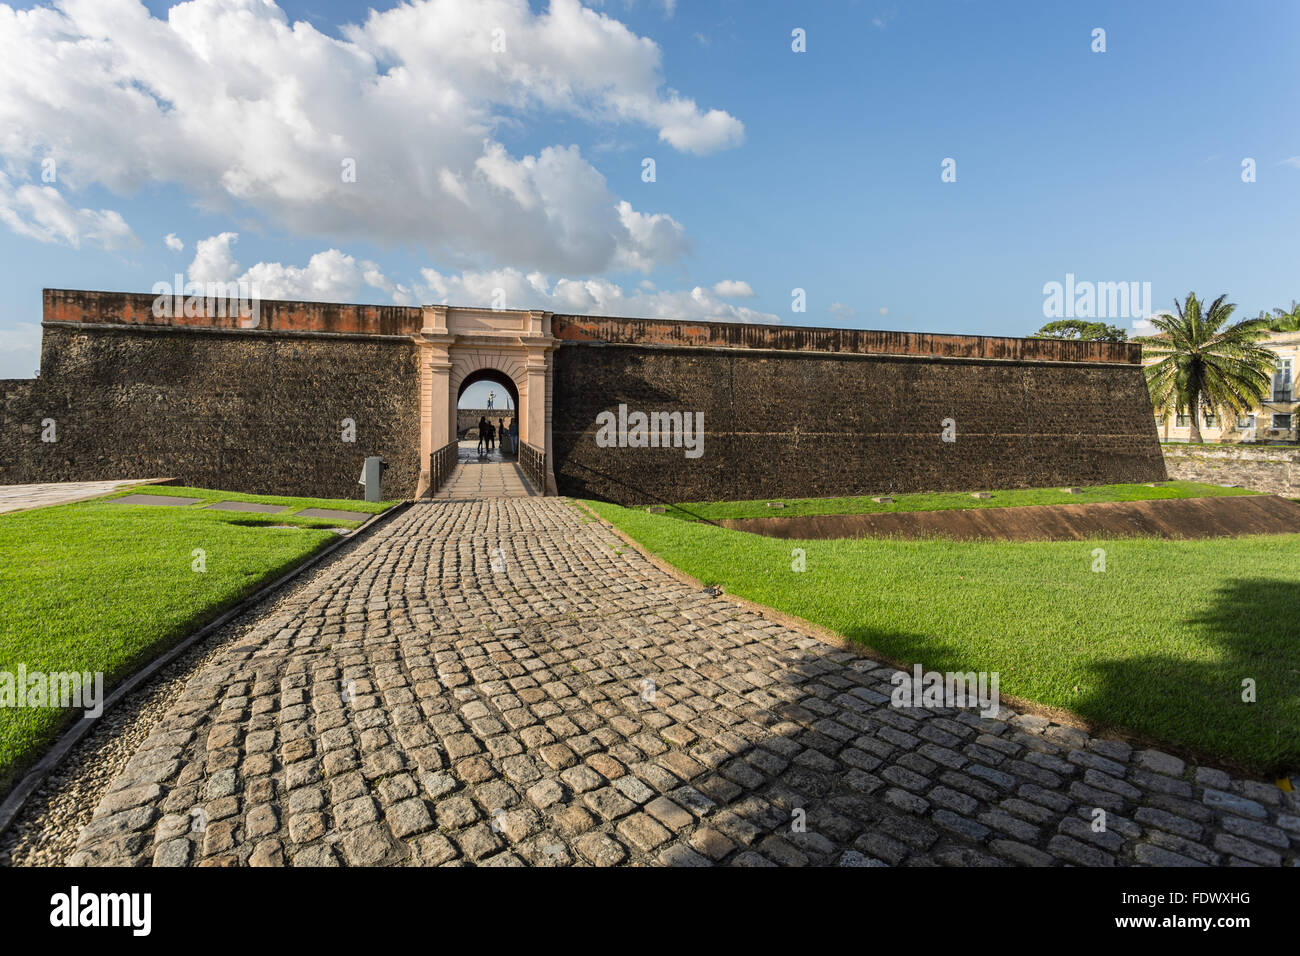 Forte do presépio (Fort of the Nativity) in the historical center of Belém, in the state of Pará, - Stock Image